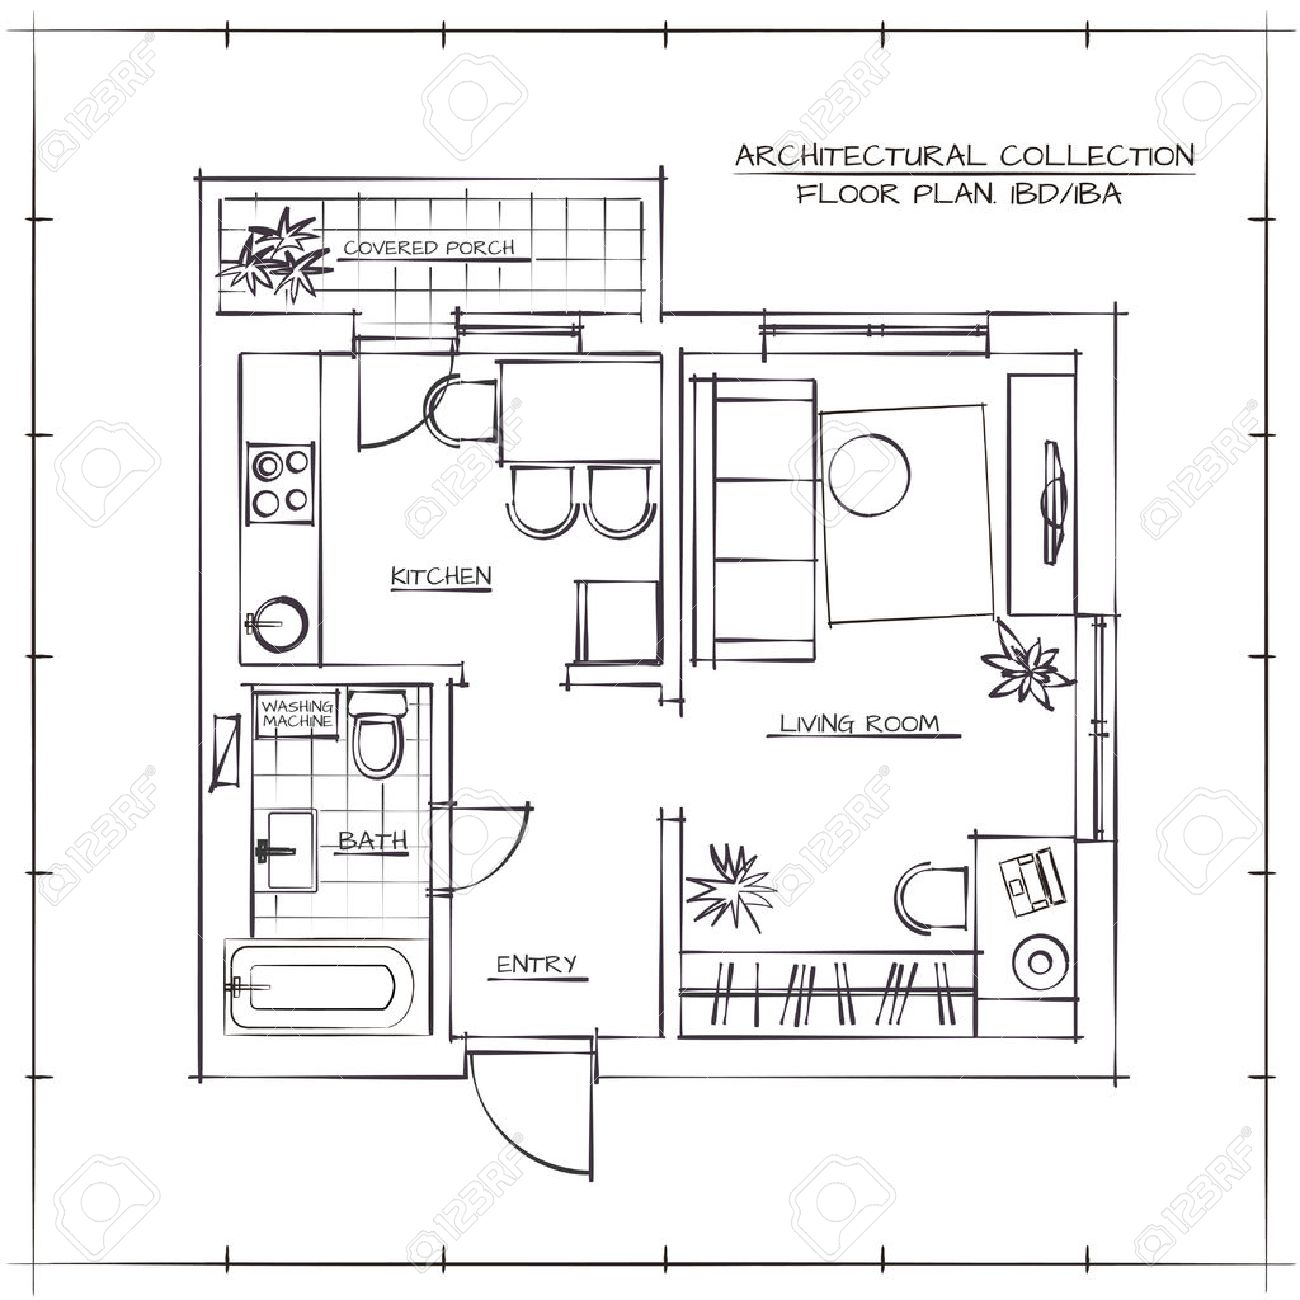 Architectural Hand Drawn Floor Plan.One Bedroom Apartment - 55412707